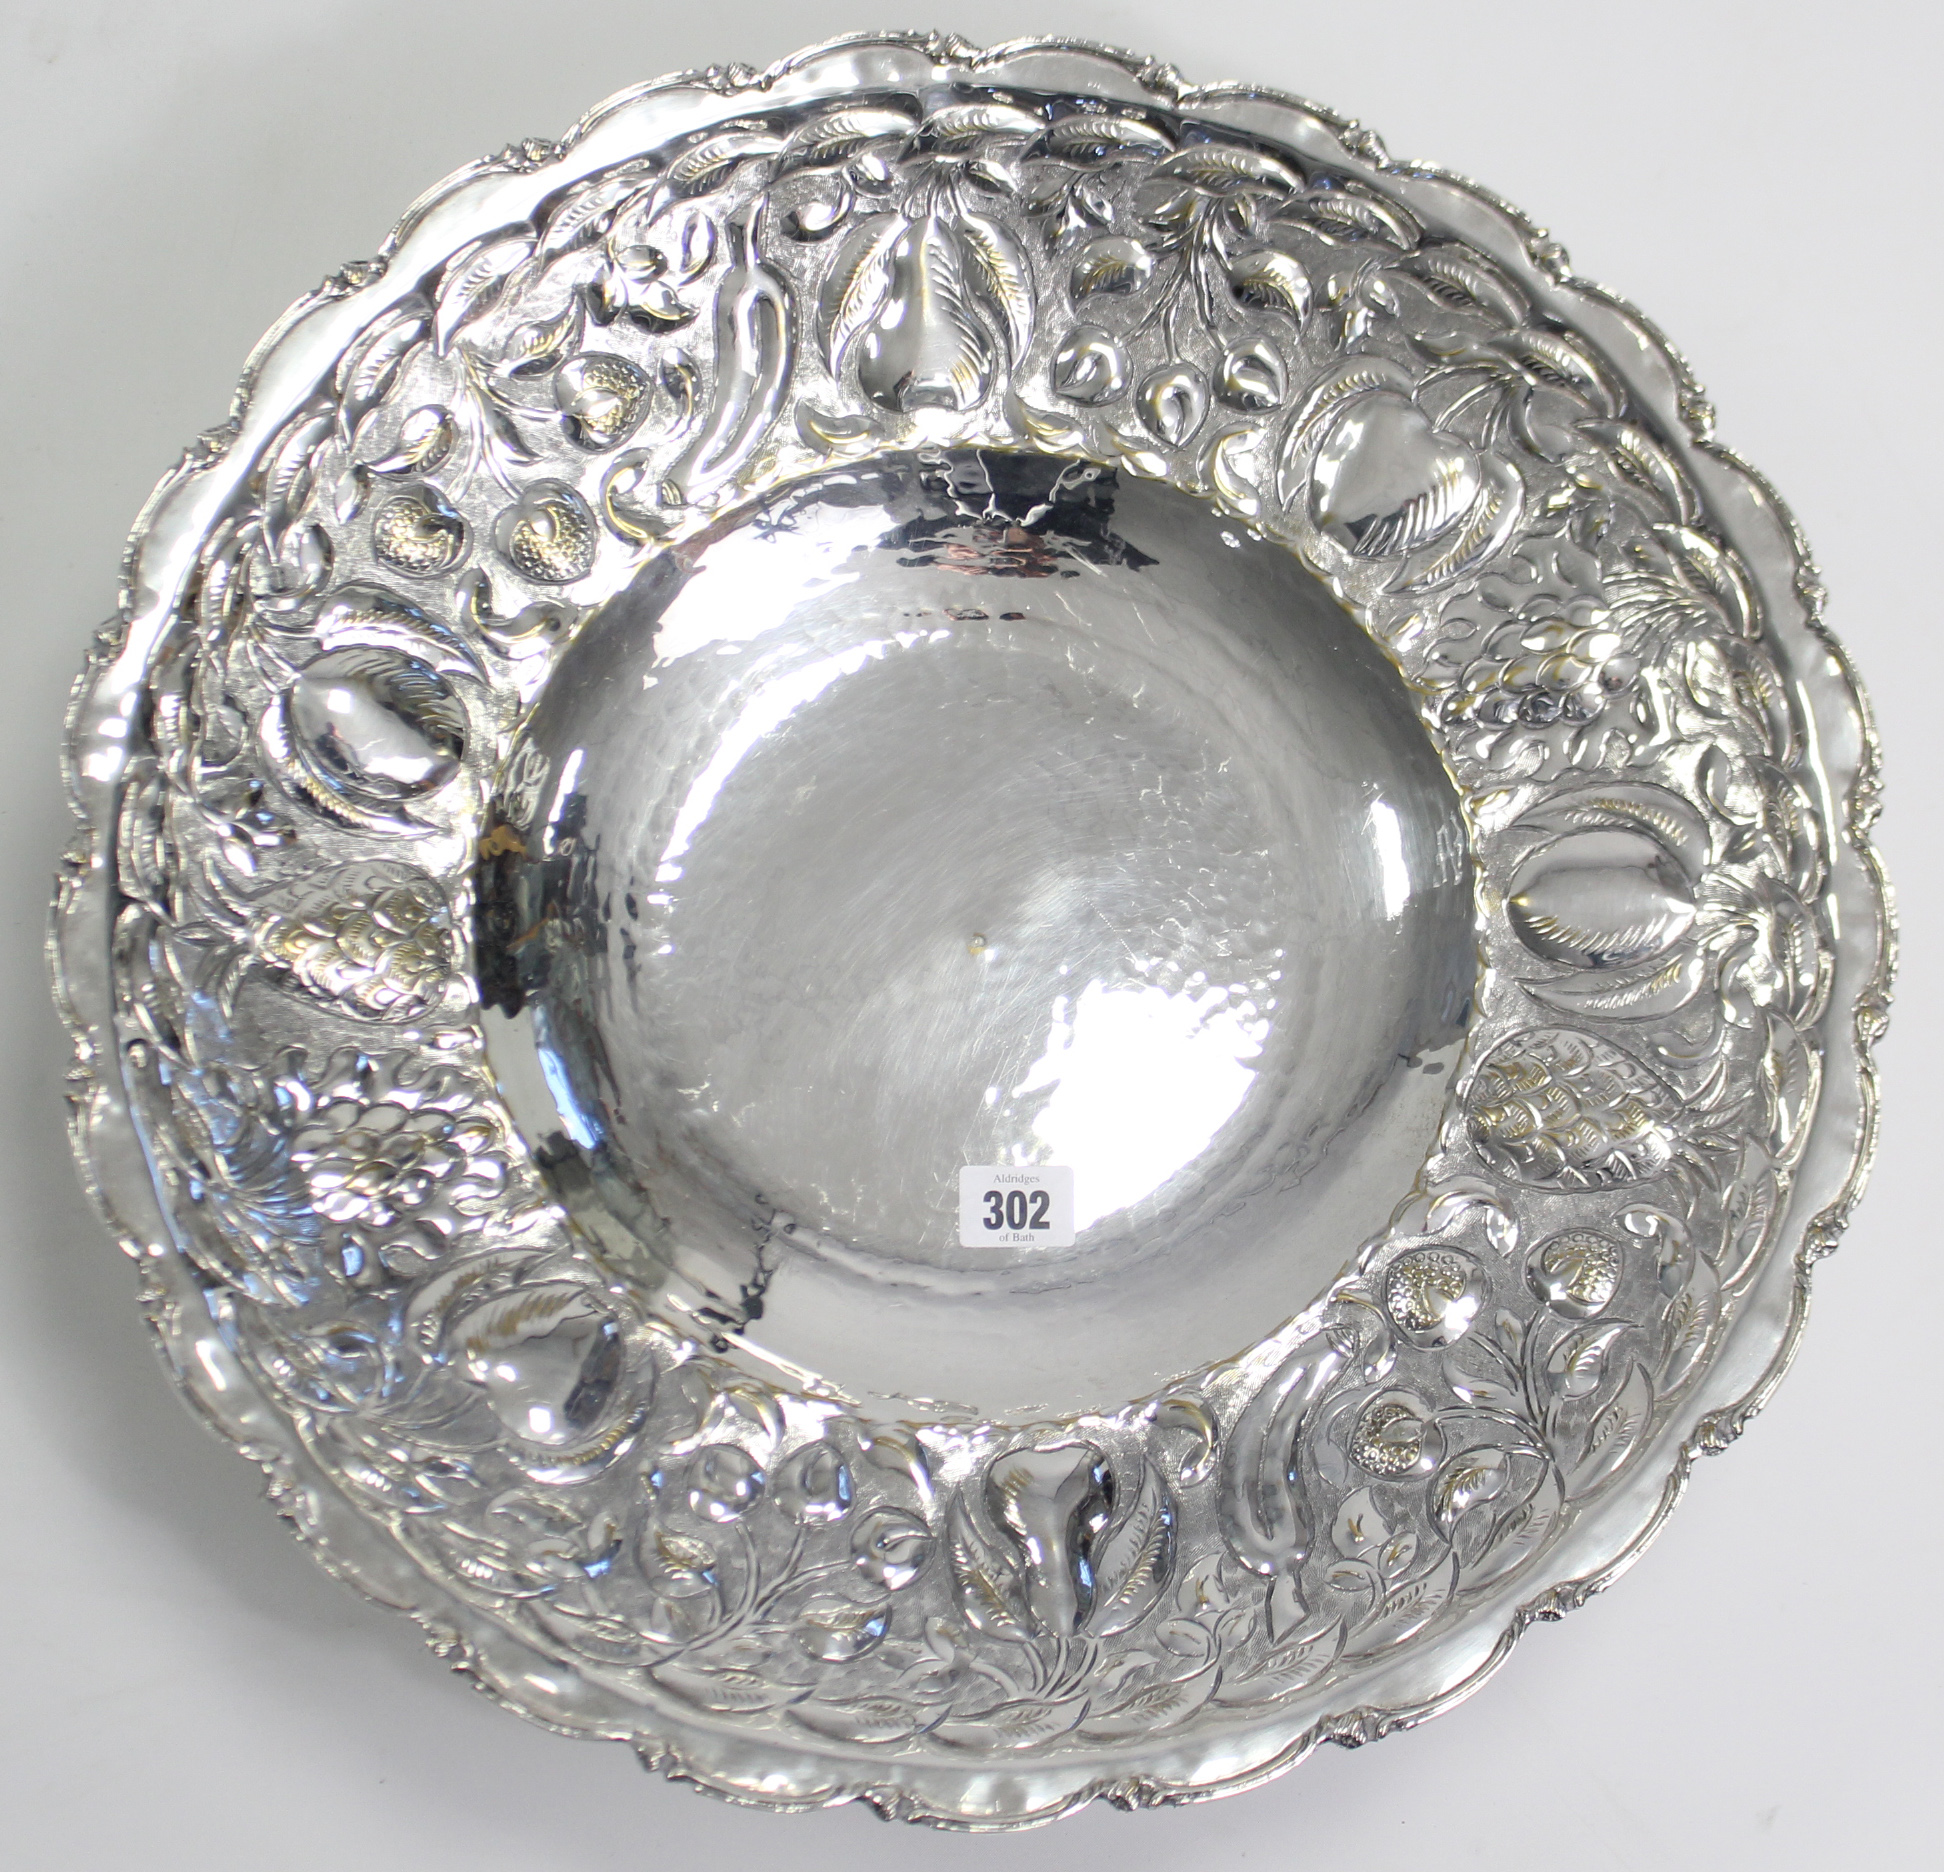 Lot 302 - A large silver plated circular comport with embossed fruit border, & on round pedestal foot, 19""